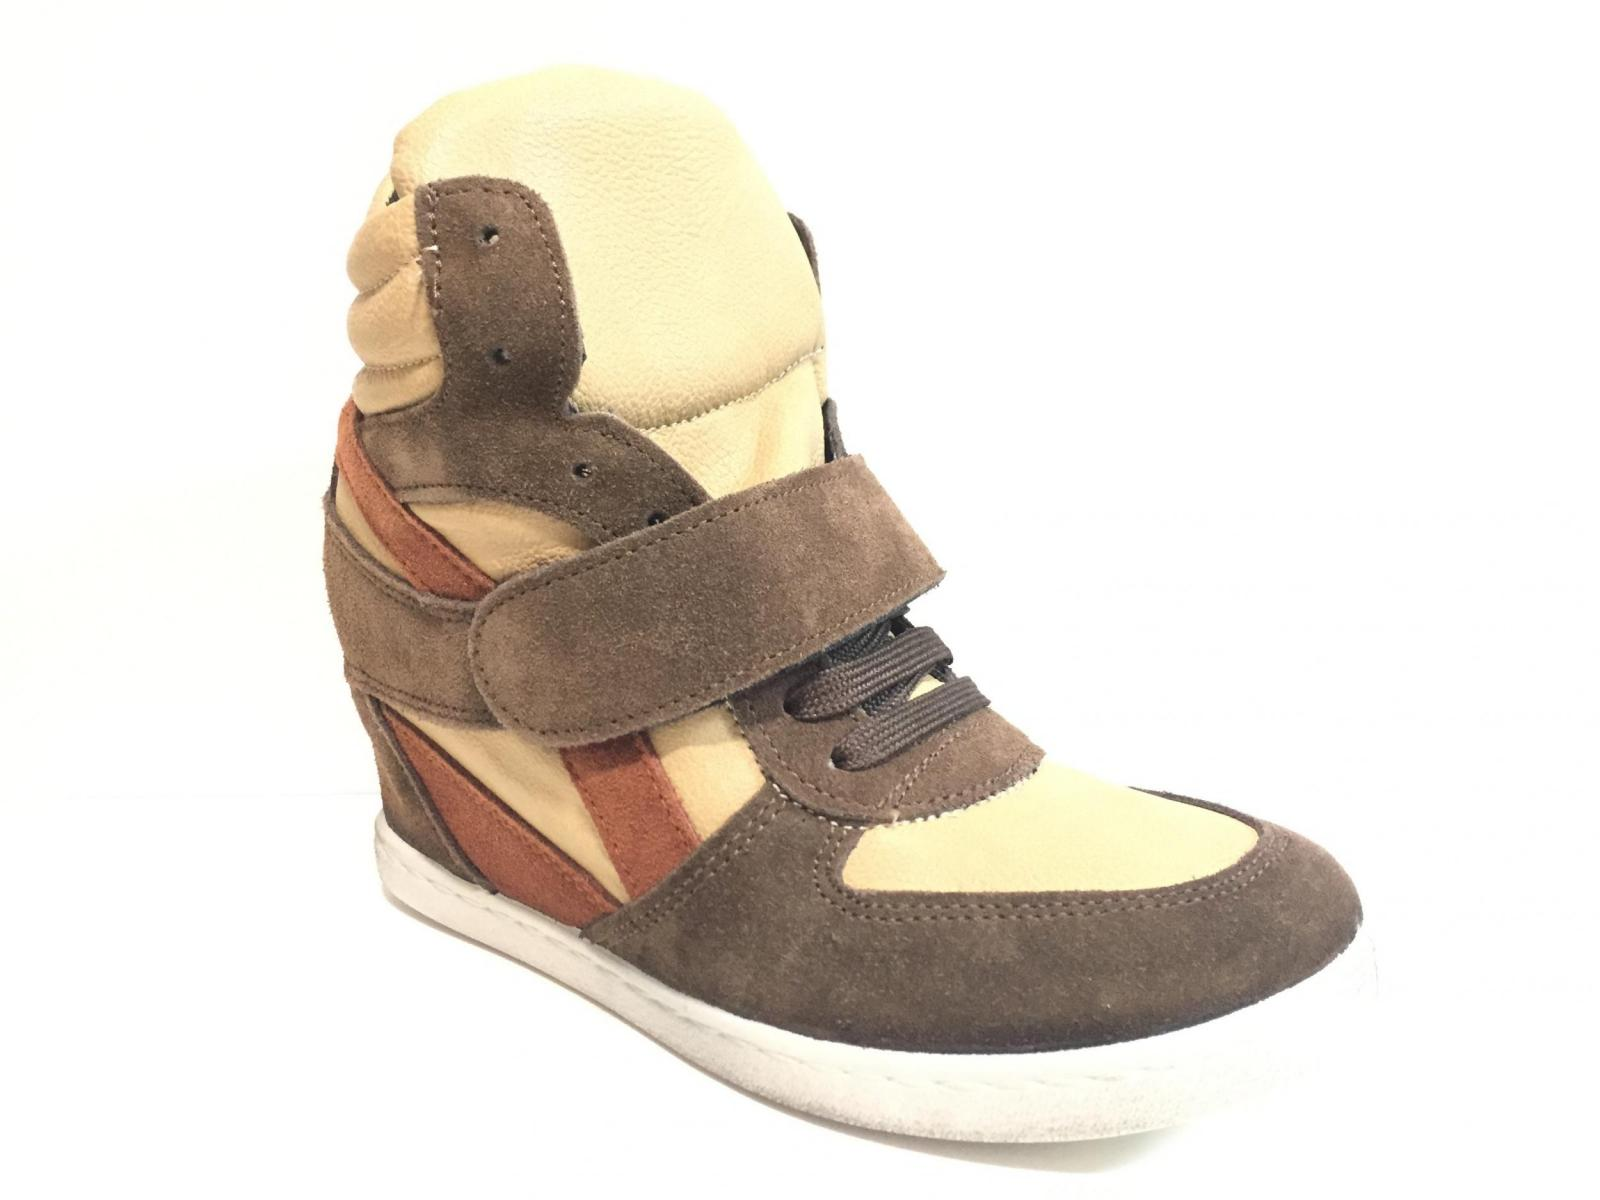 SCARPE SNEAKERS ALTE CASUAL DONNA KIOSS 20 1 PELLE BEIGE ORIGINALE AI NEW